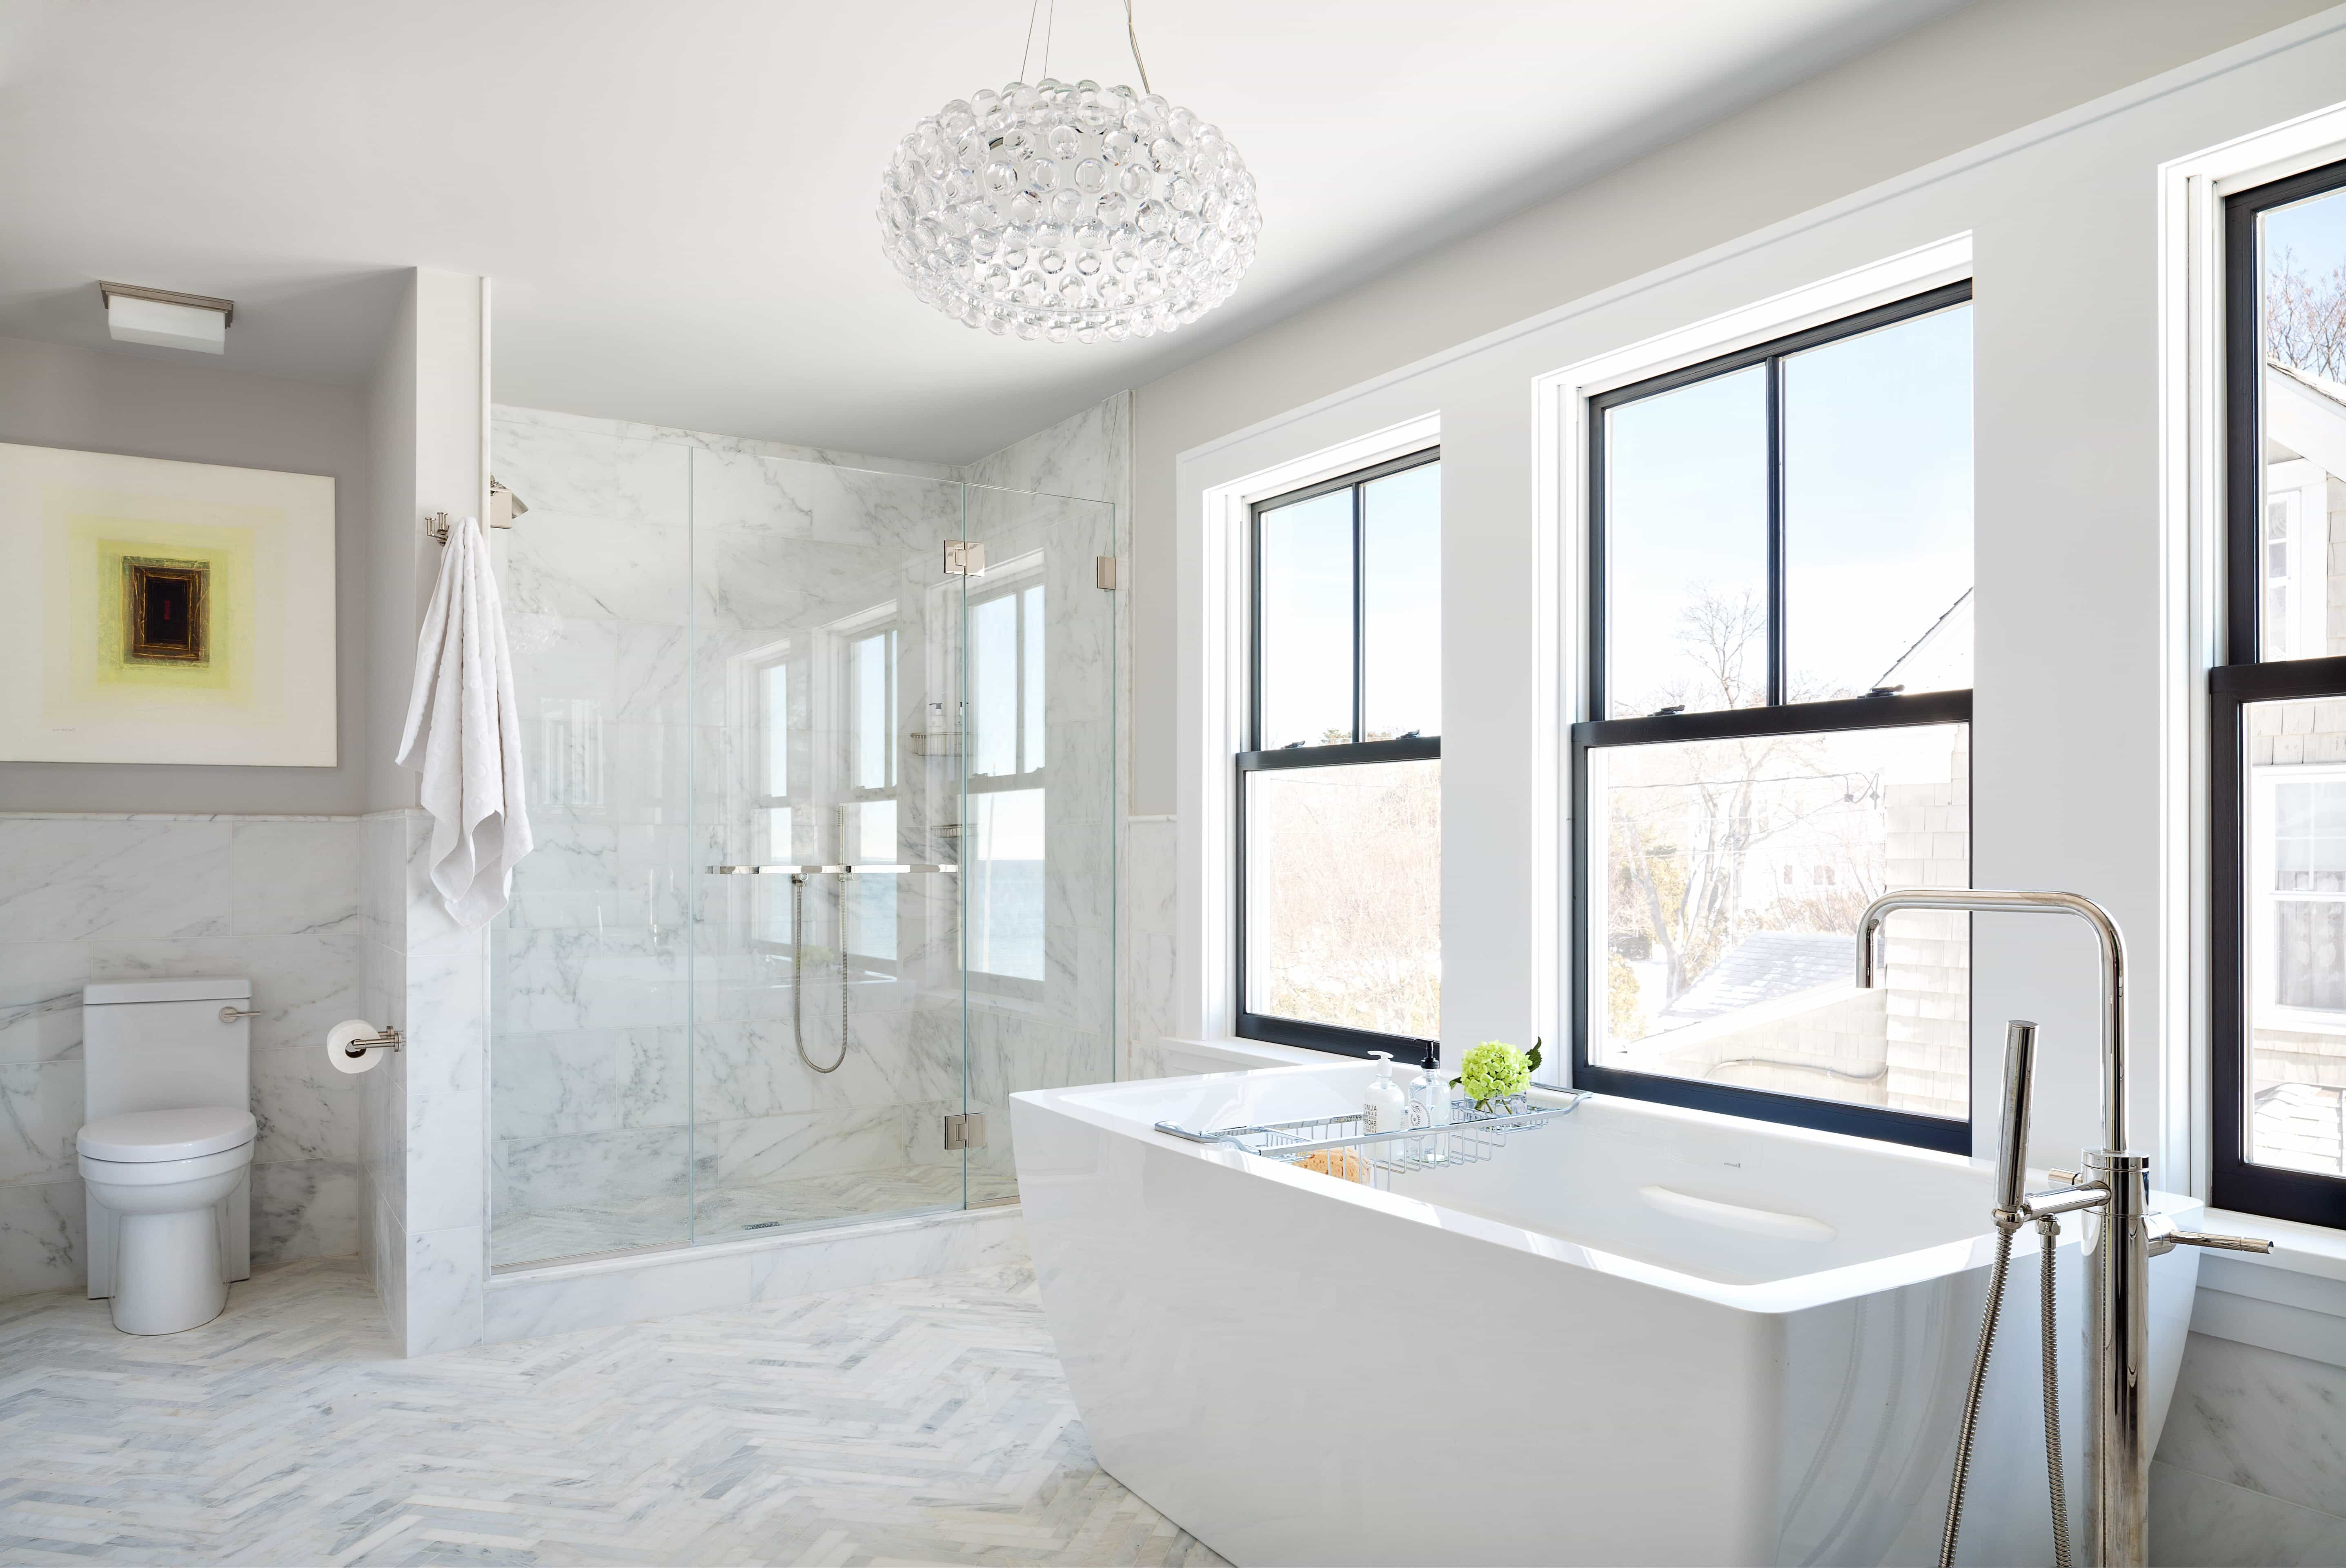 2017 Contemporary White Master Bathroom With Marble Floors (View 2 of 13)